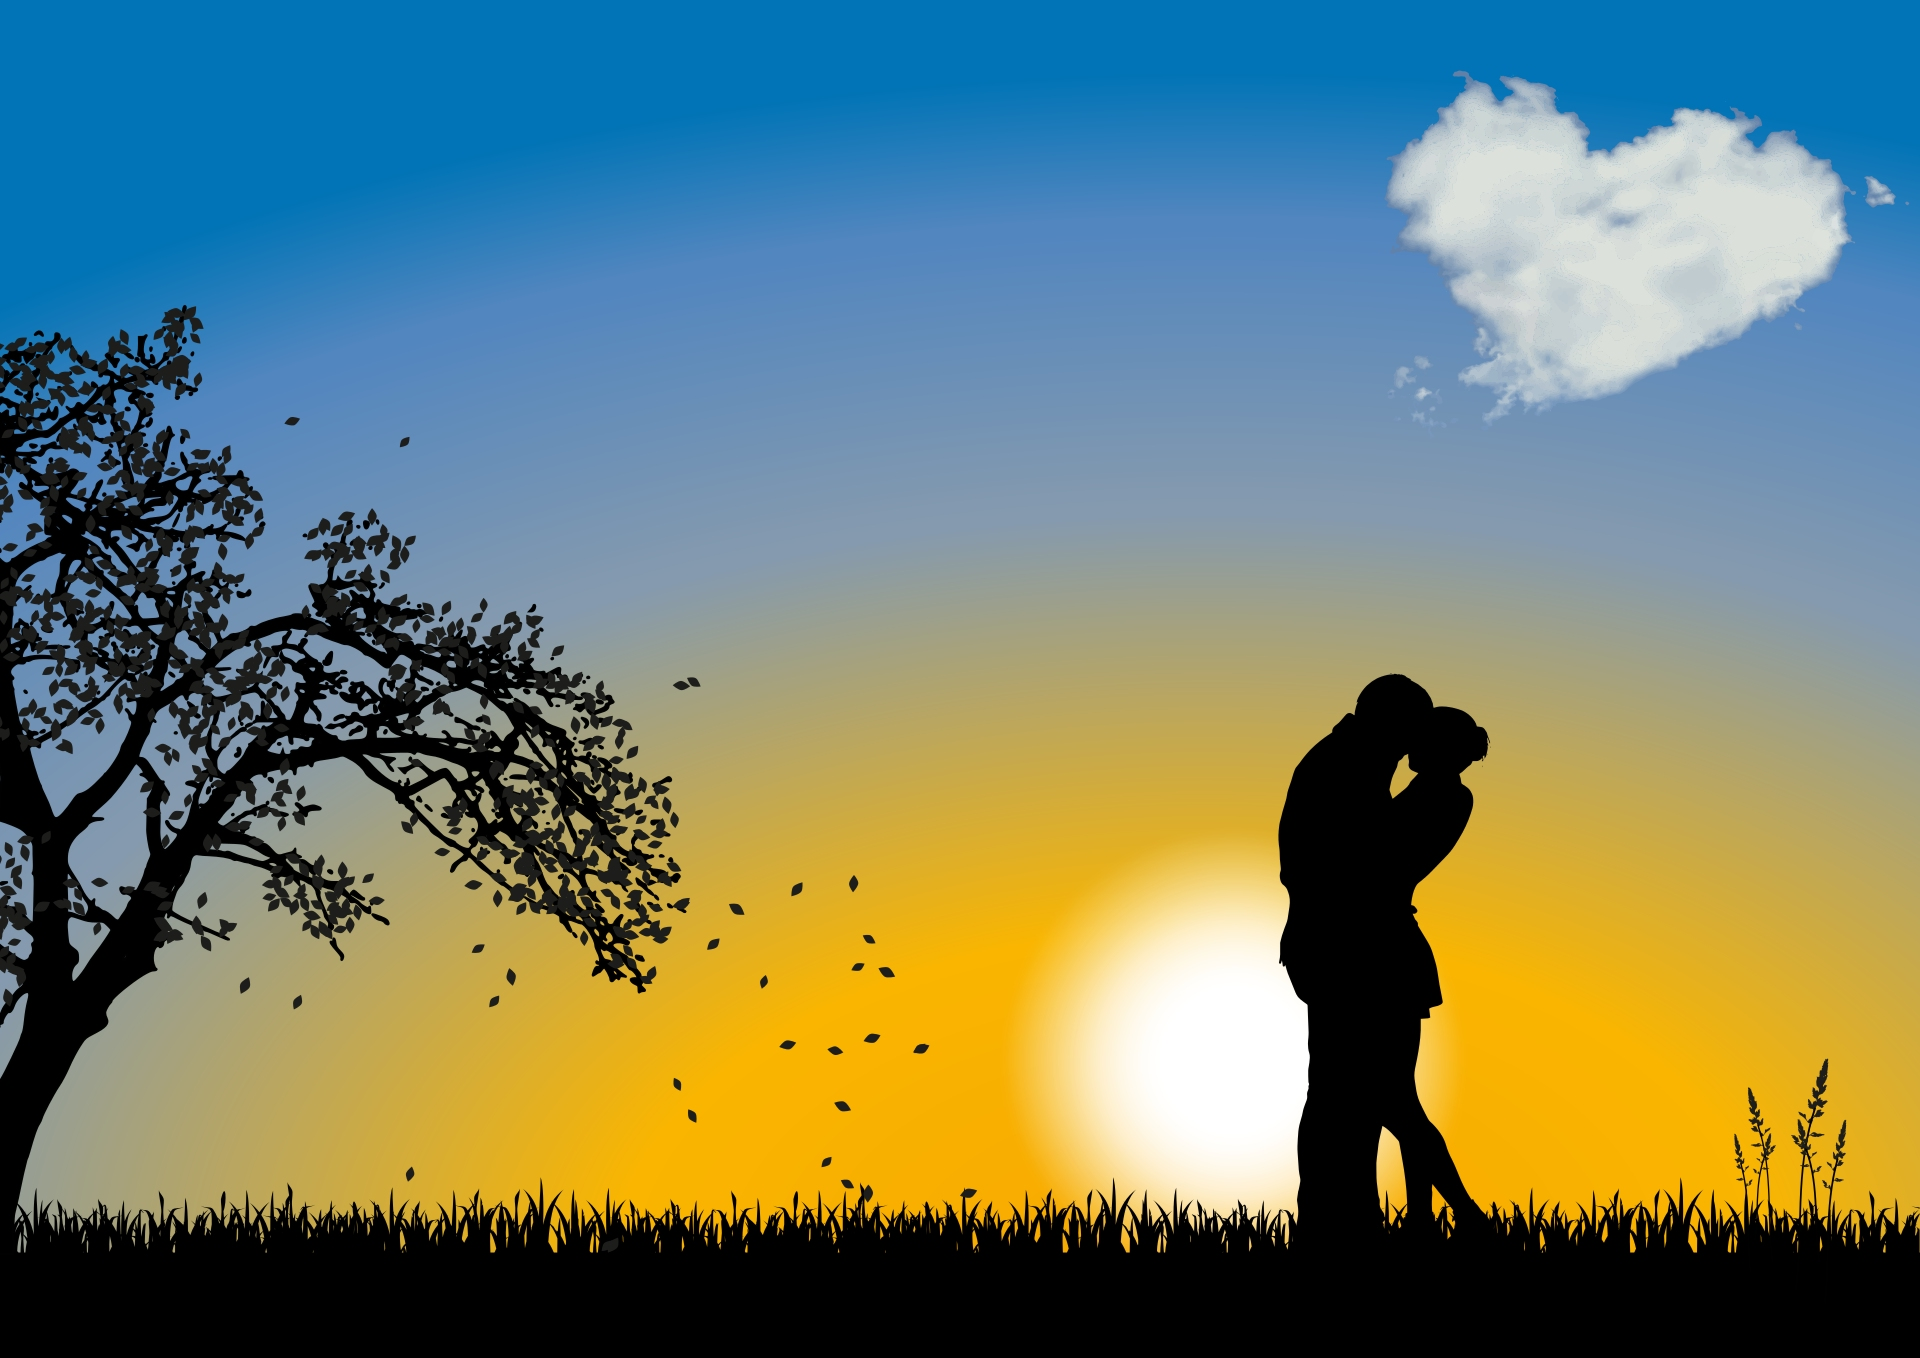 134867 download wallpaper Vector, Couple, Pair, Love, Romance, Cloud screensavers and pictures for free